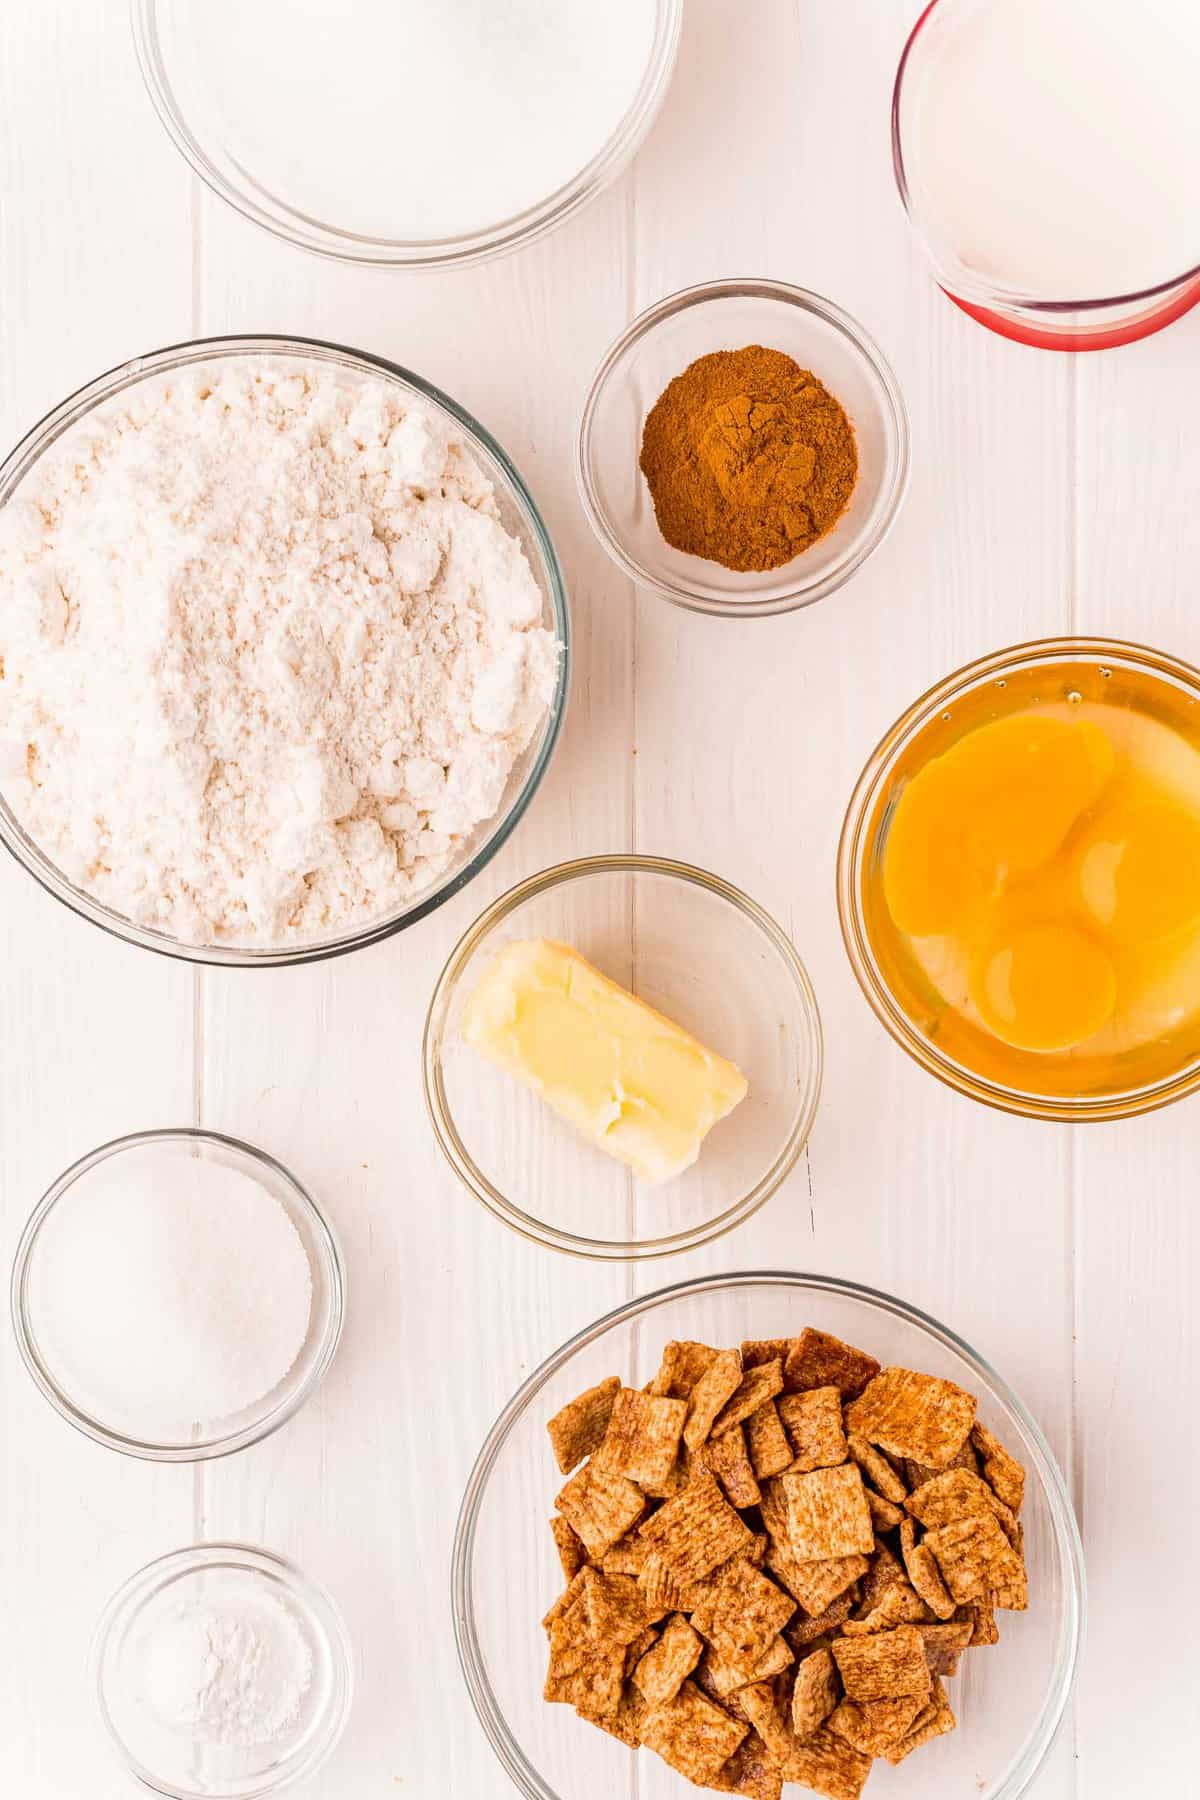 Overhead view of small glass bowls with ingredients, including cinnamon cereal, flour, butter, eggs, and cinnamon.